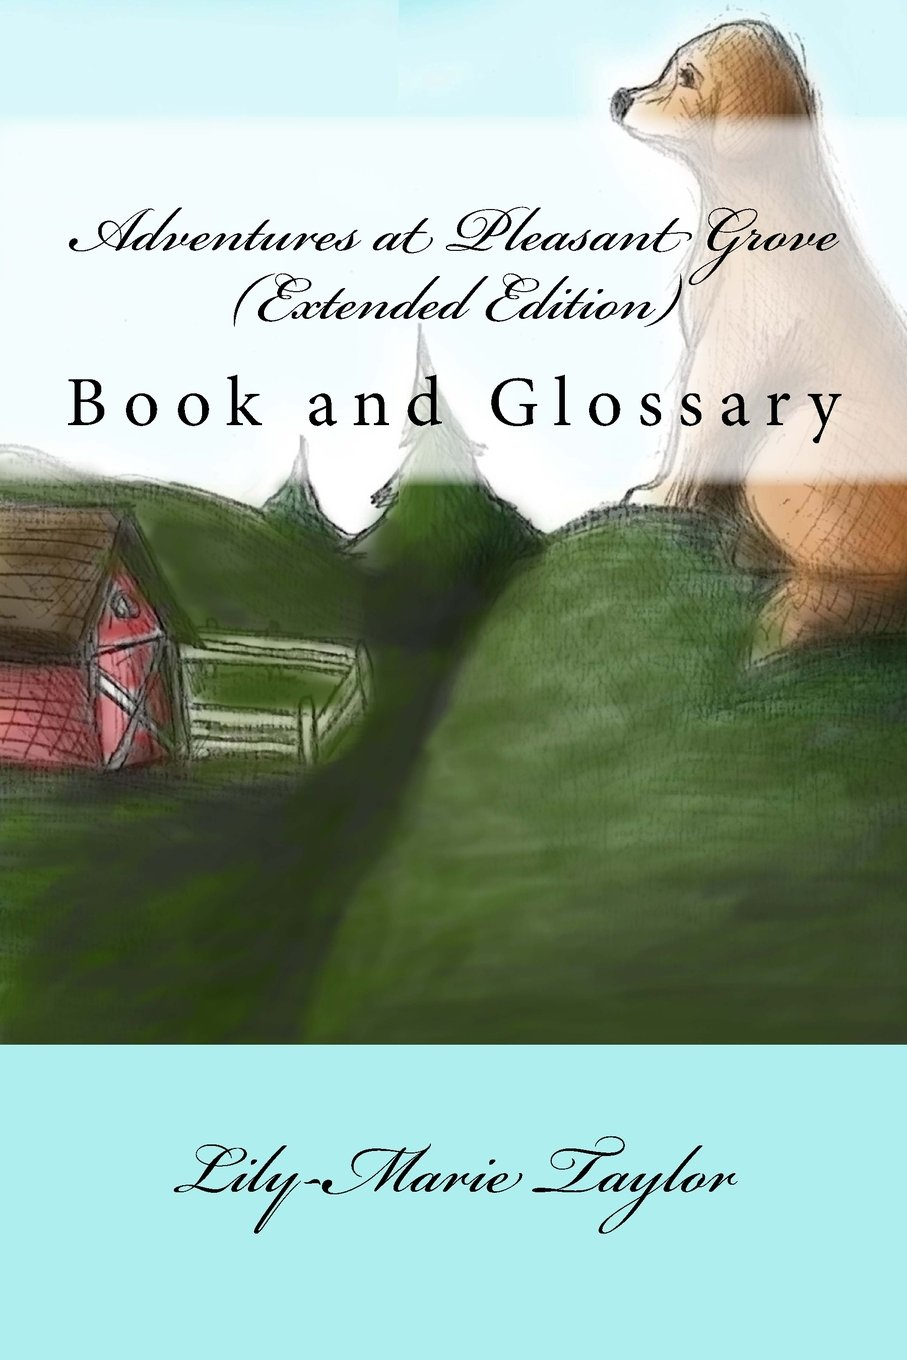 Download Adventures at Pleasant Grove (Extended Edition): Book and Glossary PDF